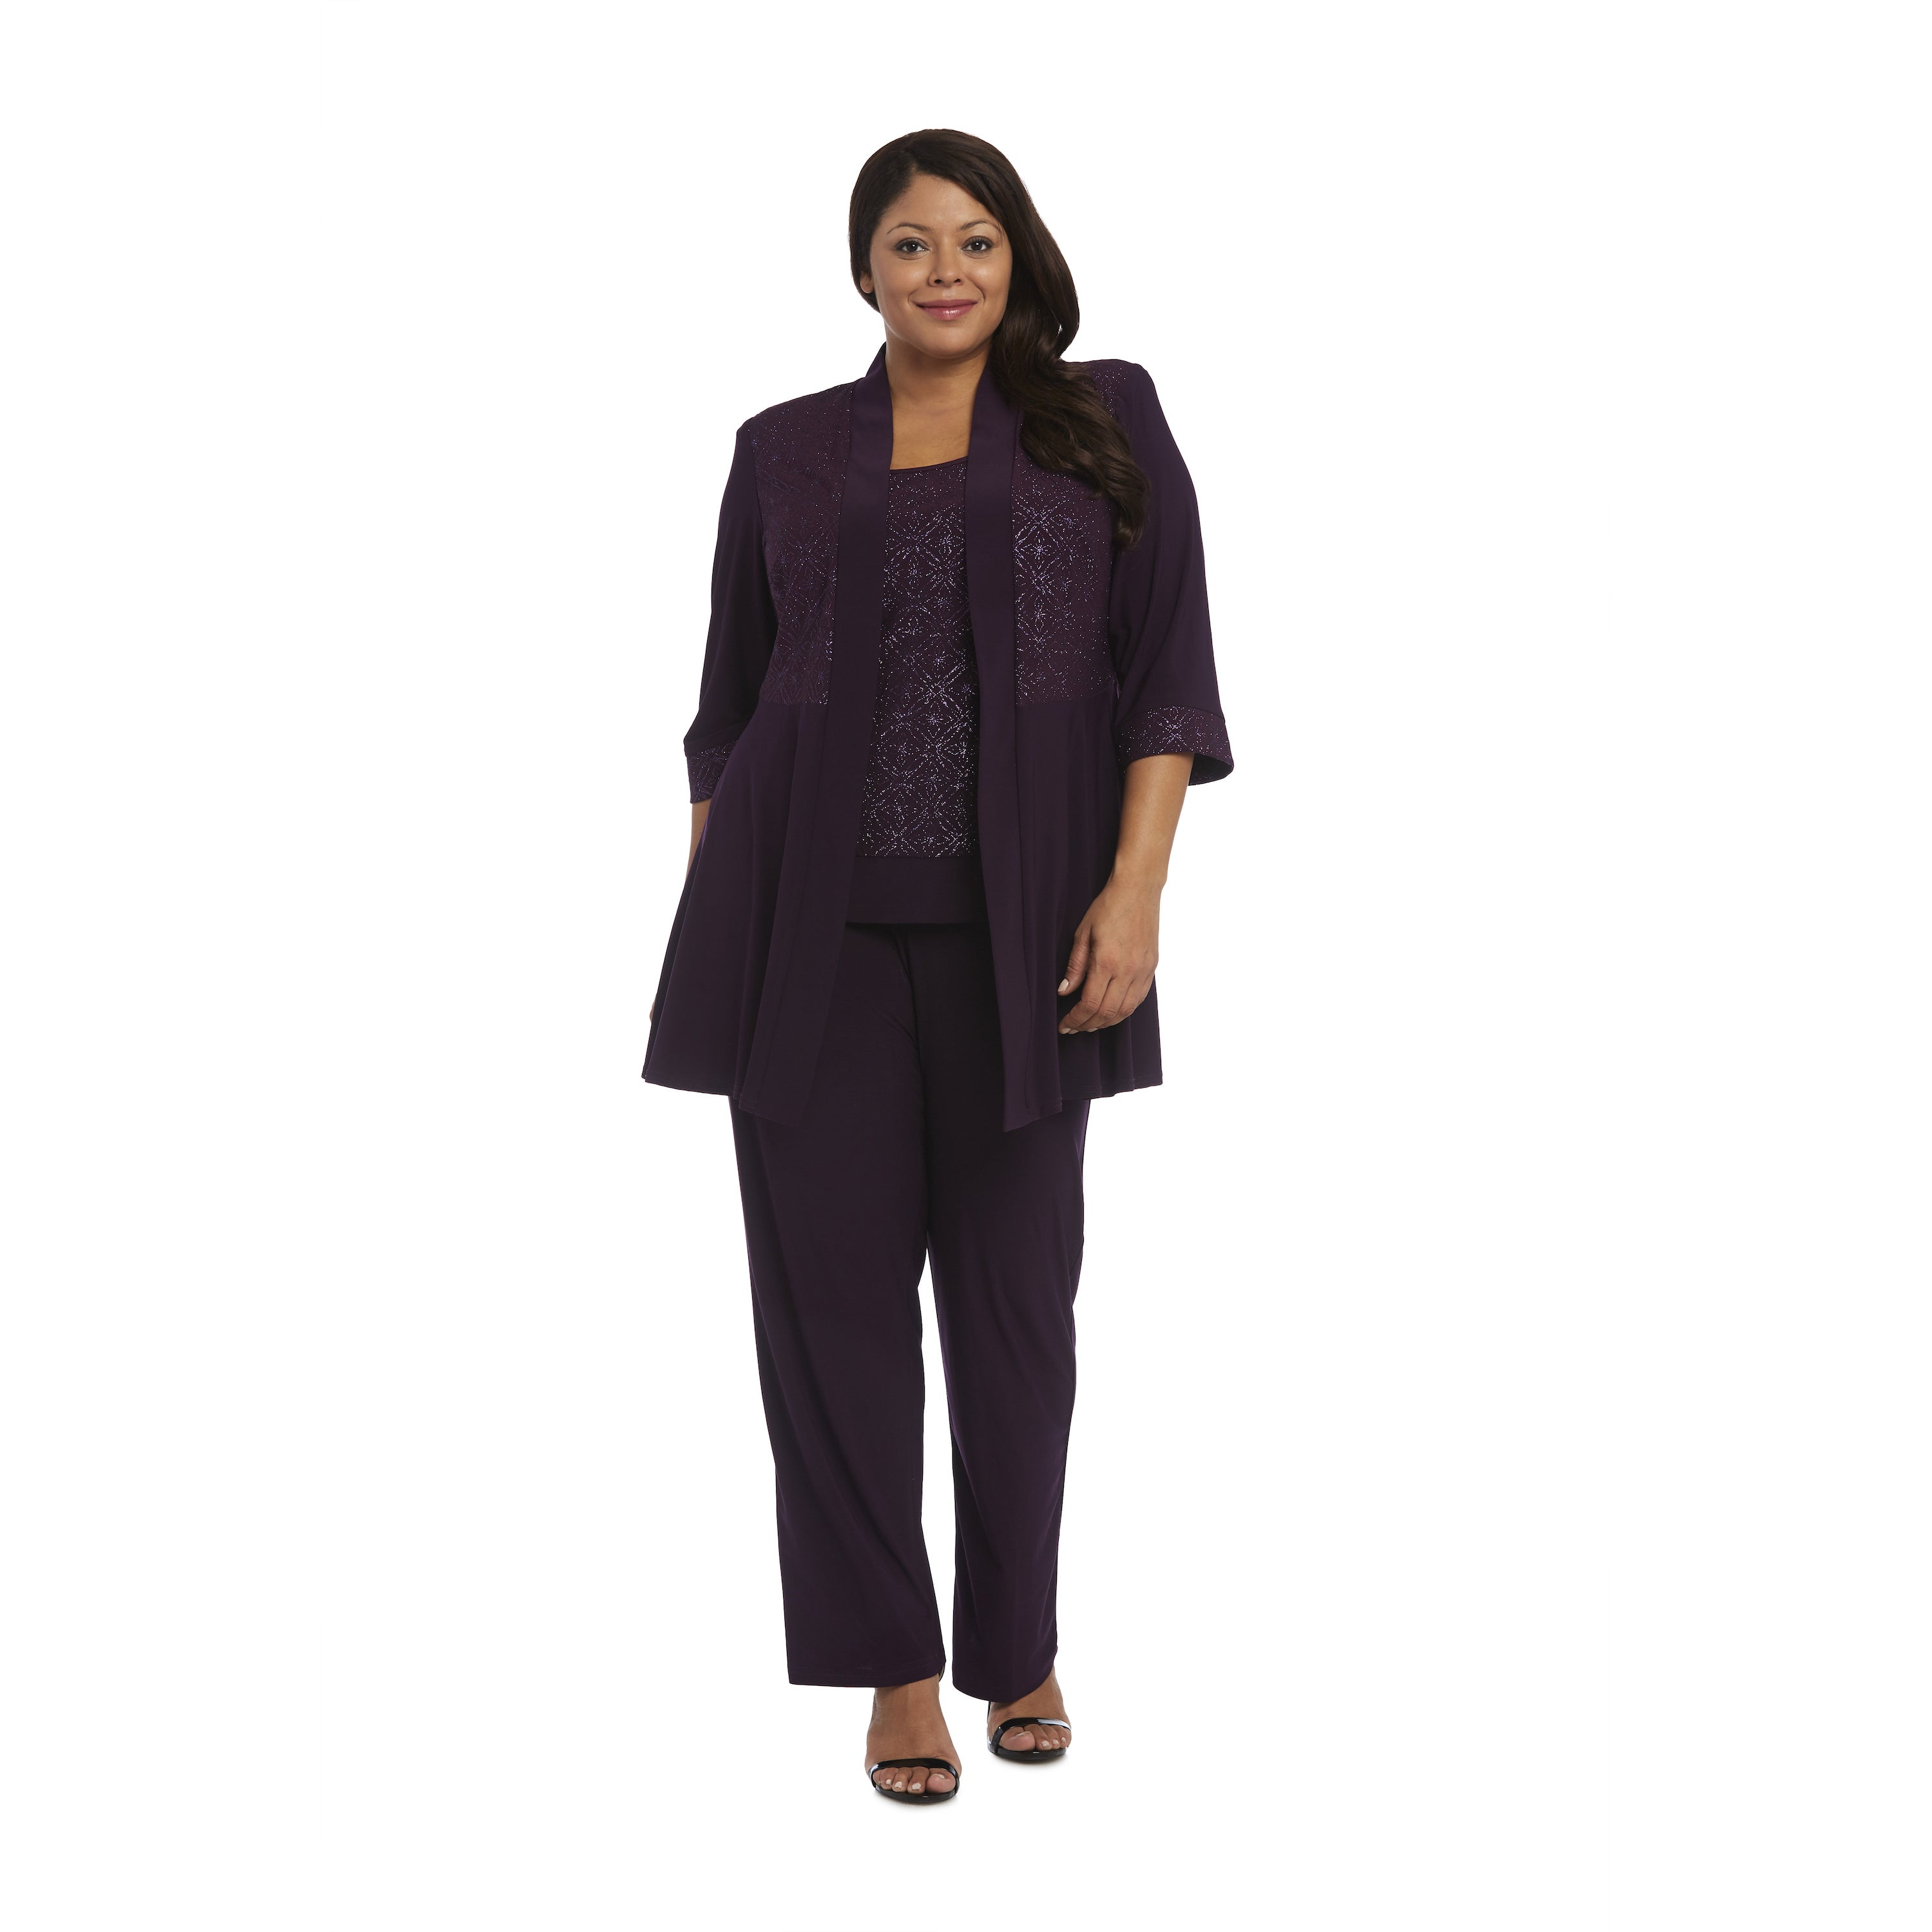 66bb9118d Shop R&M Richards Purple Polyester/Spandex Plus Size Glitter Pant Set -  Free Shipping Today - Overstock - 13273053